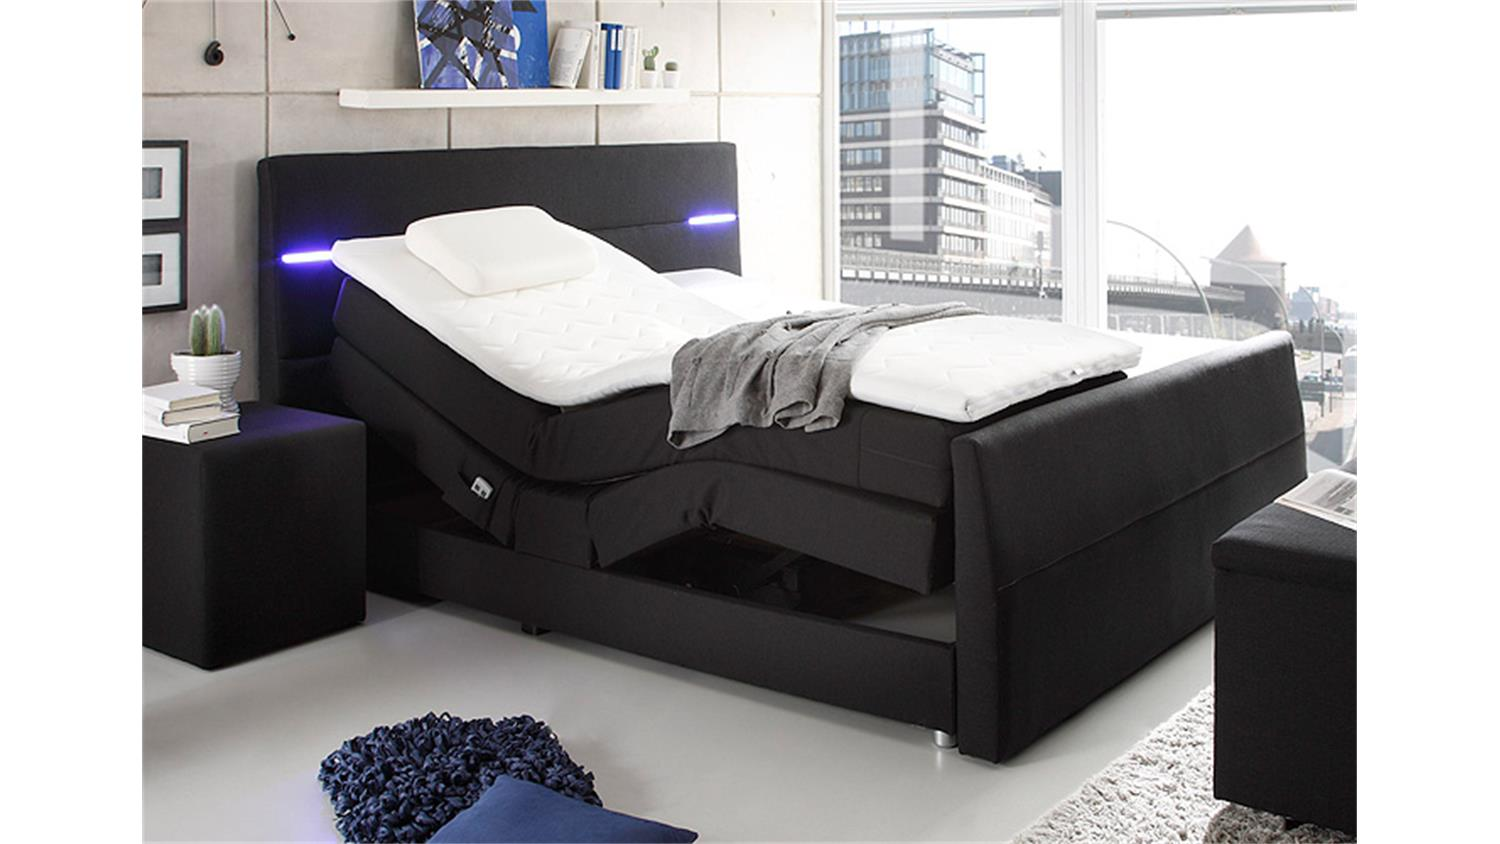 boxspringbett mit motor und bettkasten boxspringbett mit motor und bettkasten bilder elegante. Black Bedroom Furniture Sets. Home Design Ideas